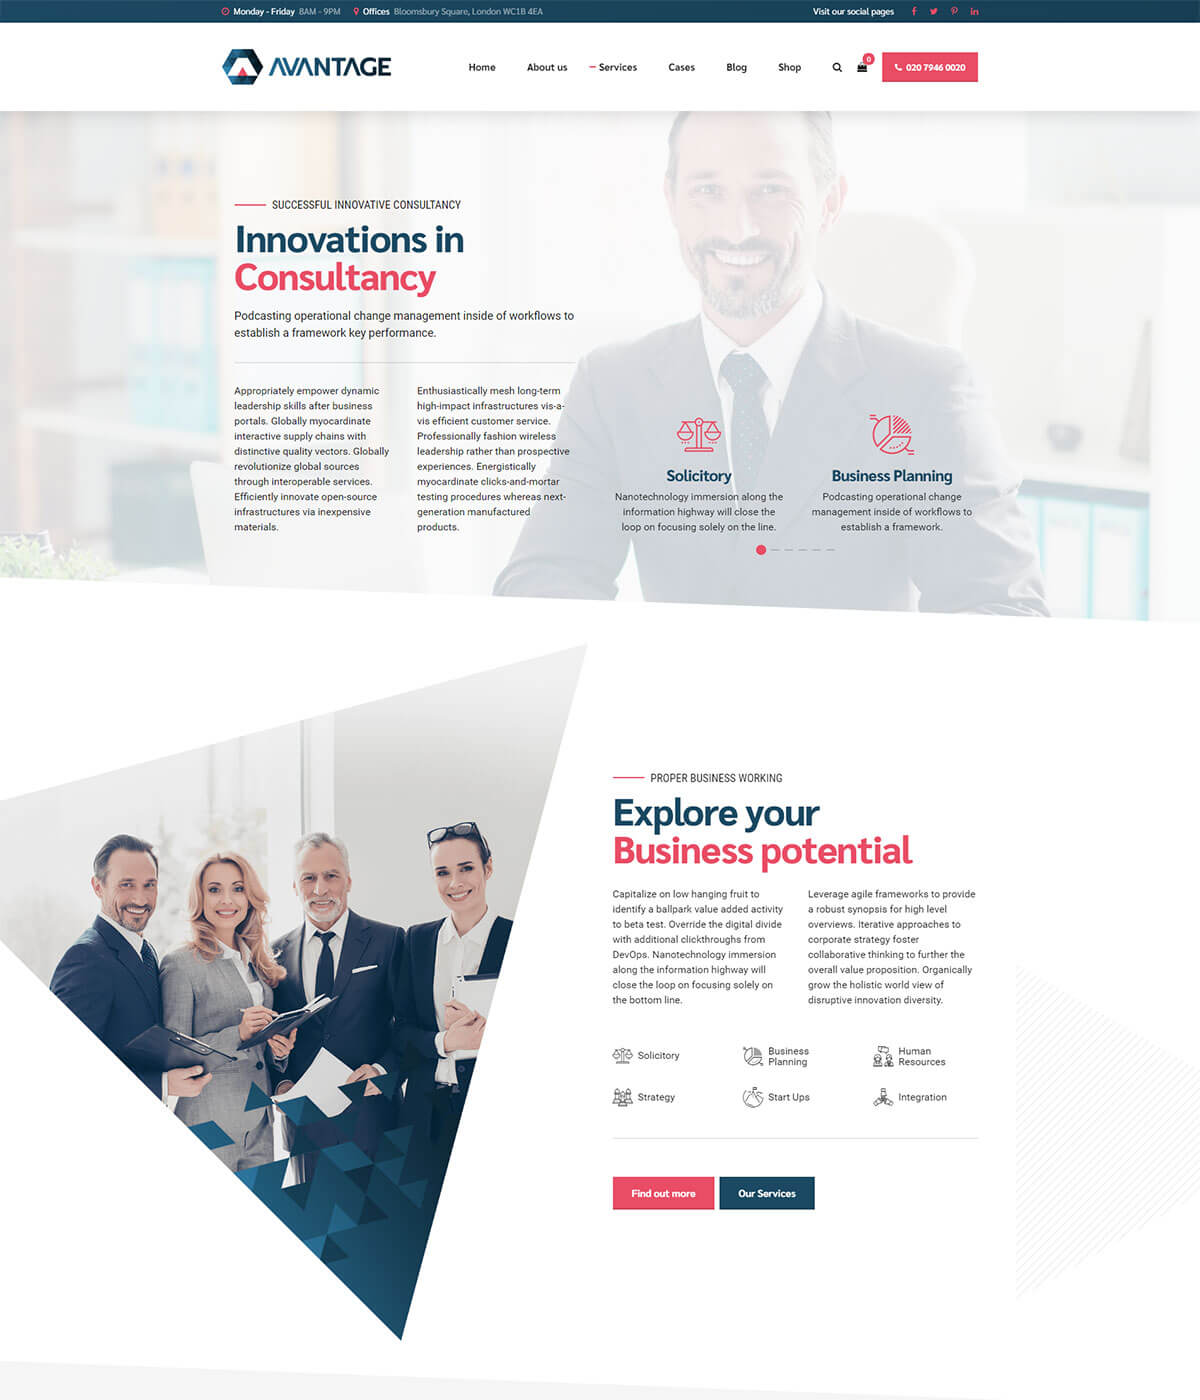 http://avantage.bold-themes.com/wp-content/uploads/2019/05/business-09-solutions.jpg